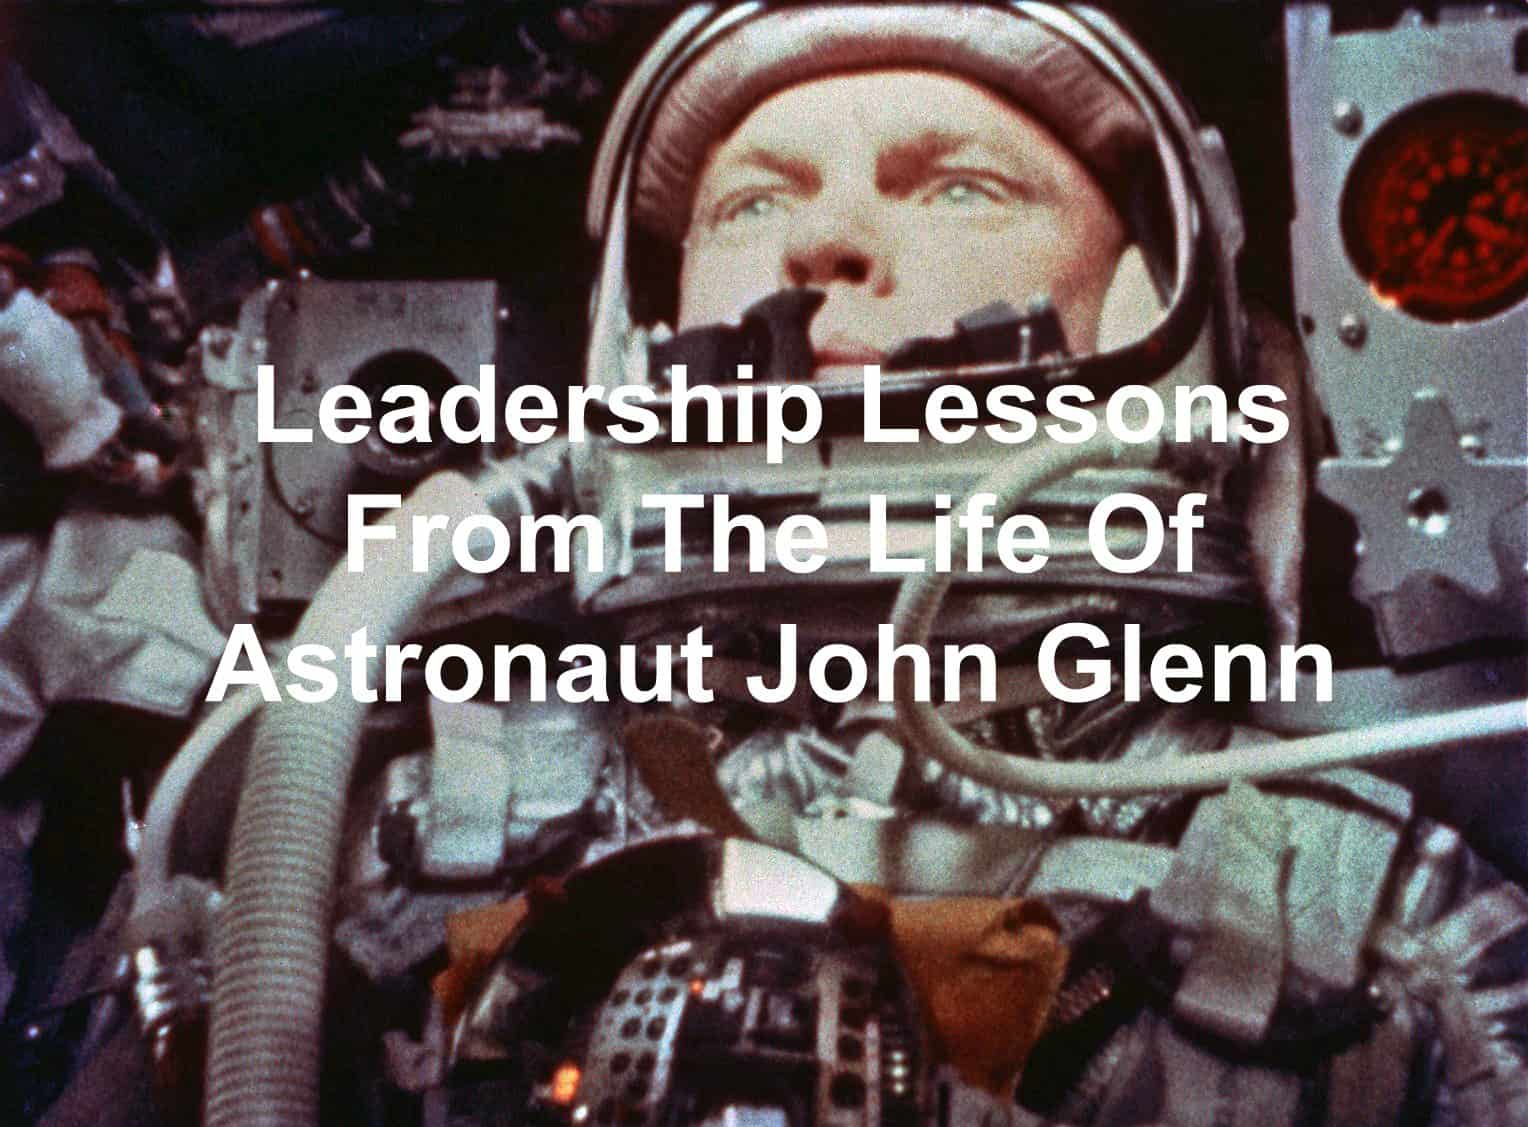 john glenn astronaut quotes - photo #3